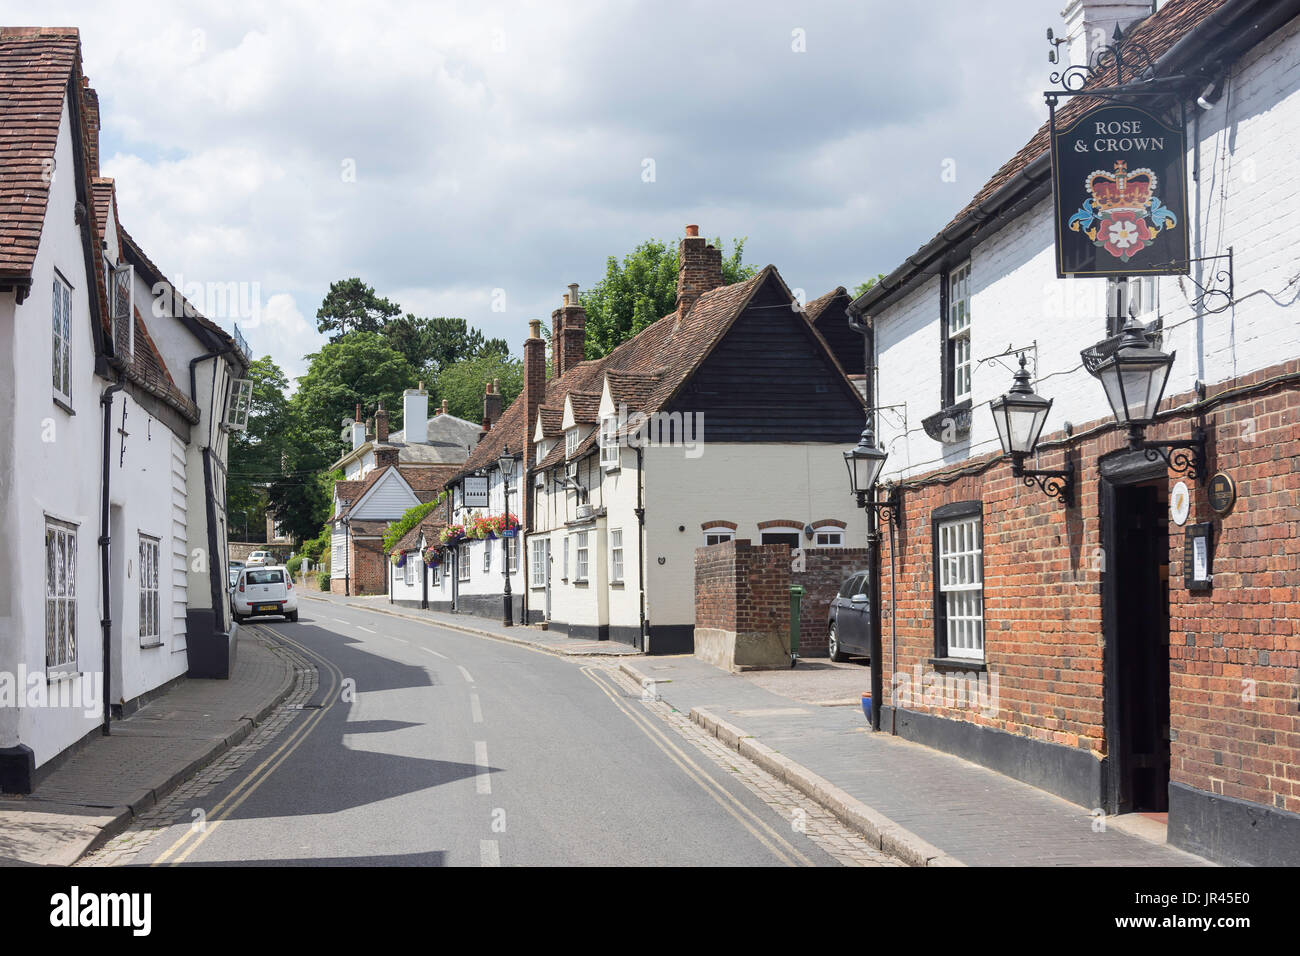 The Rose & Crown and The Six Bells pubs, St Michael's Street, St Michael's Village, St.Albans, Hertfordshire, England, United Kingdom - Stock Image